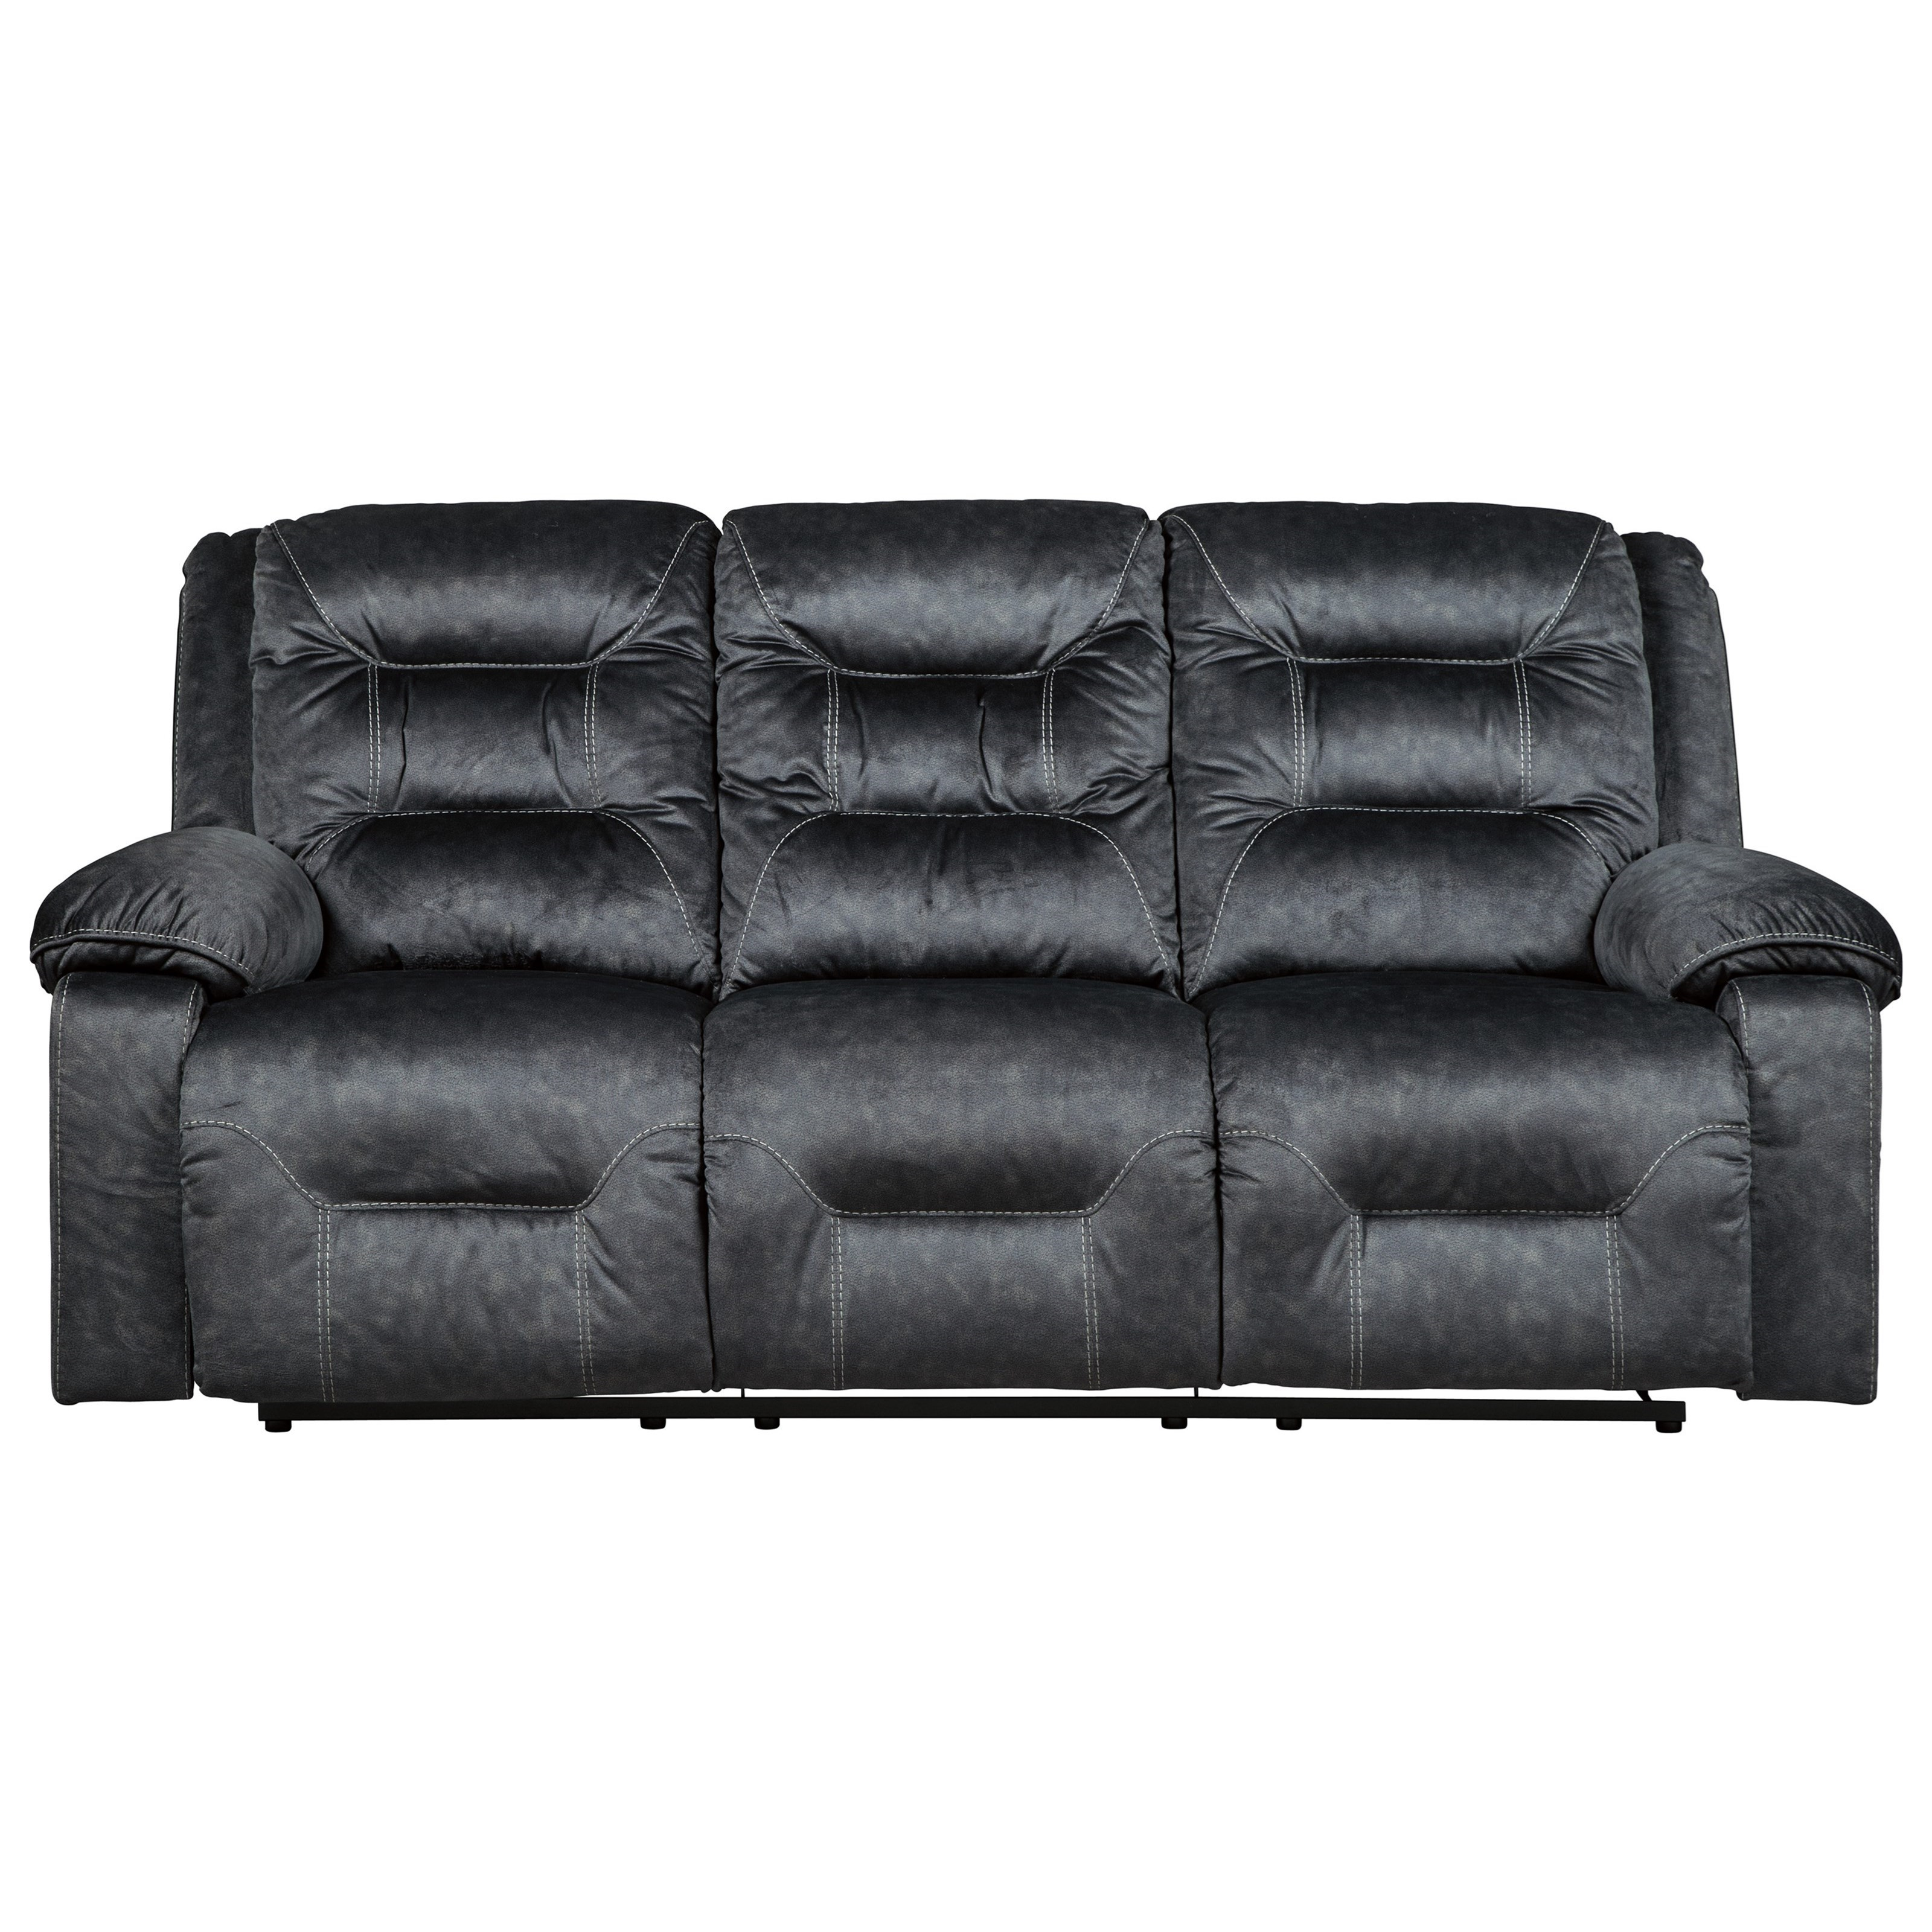 Sofa Relax Con Usb Waldheim Power Reclining Sofa W Adjustable Headrests By Signature Design By Ashley At Household Furniture